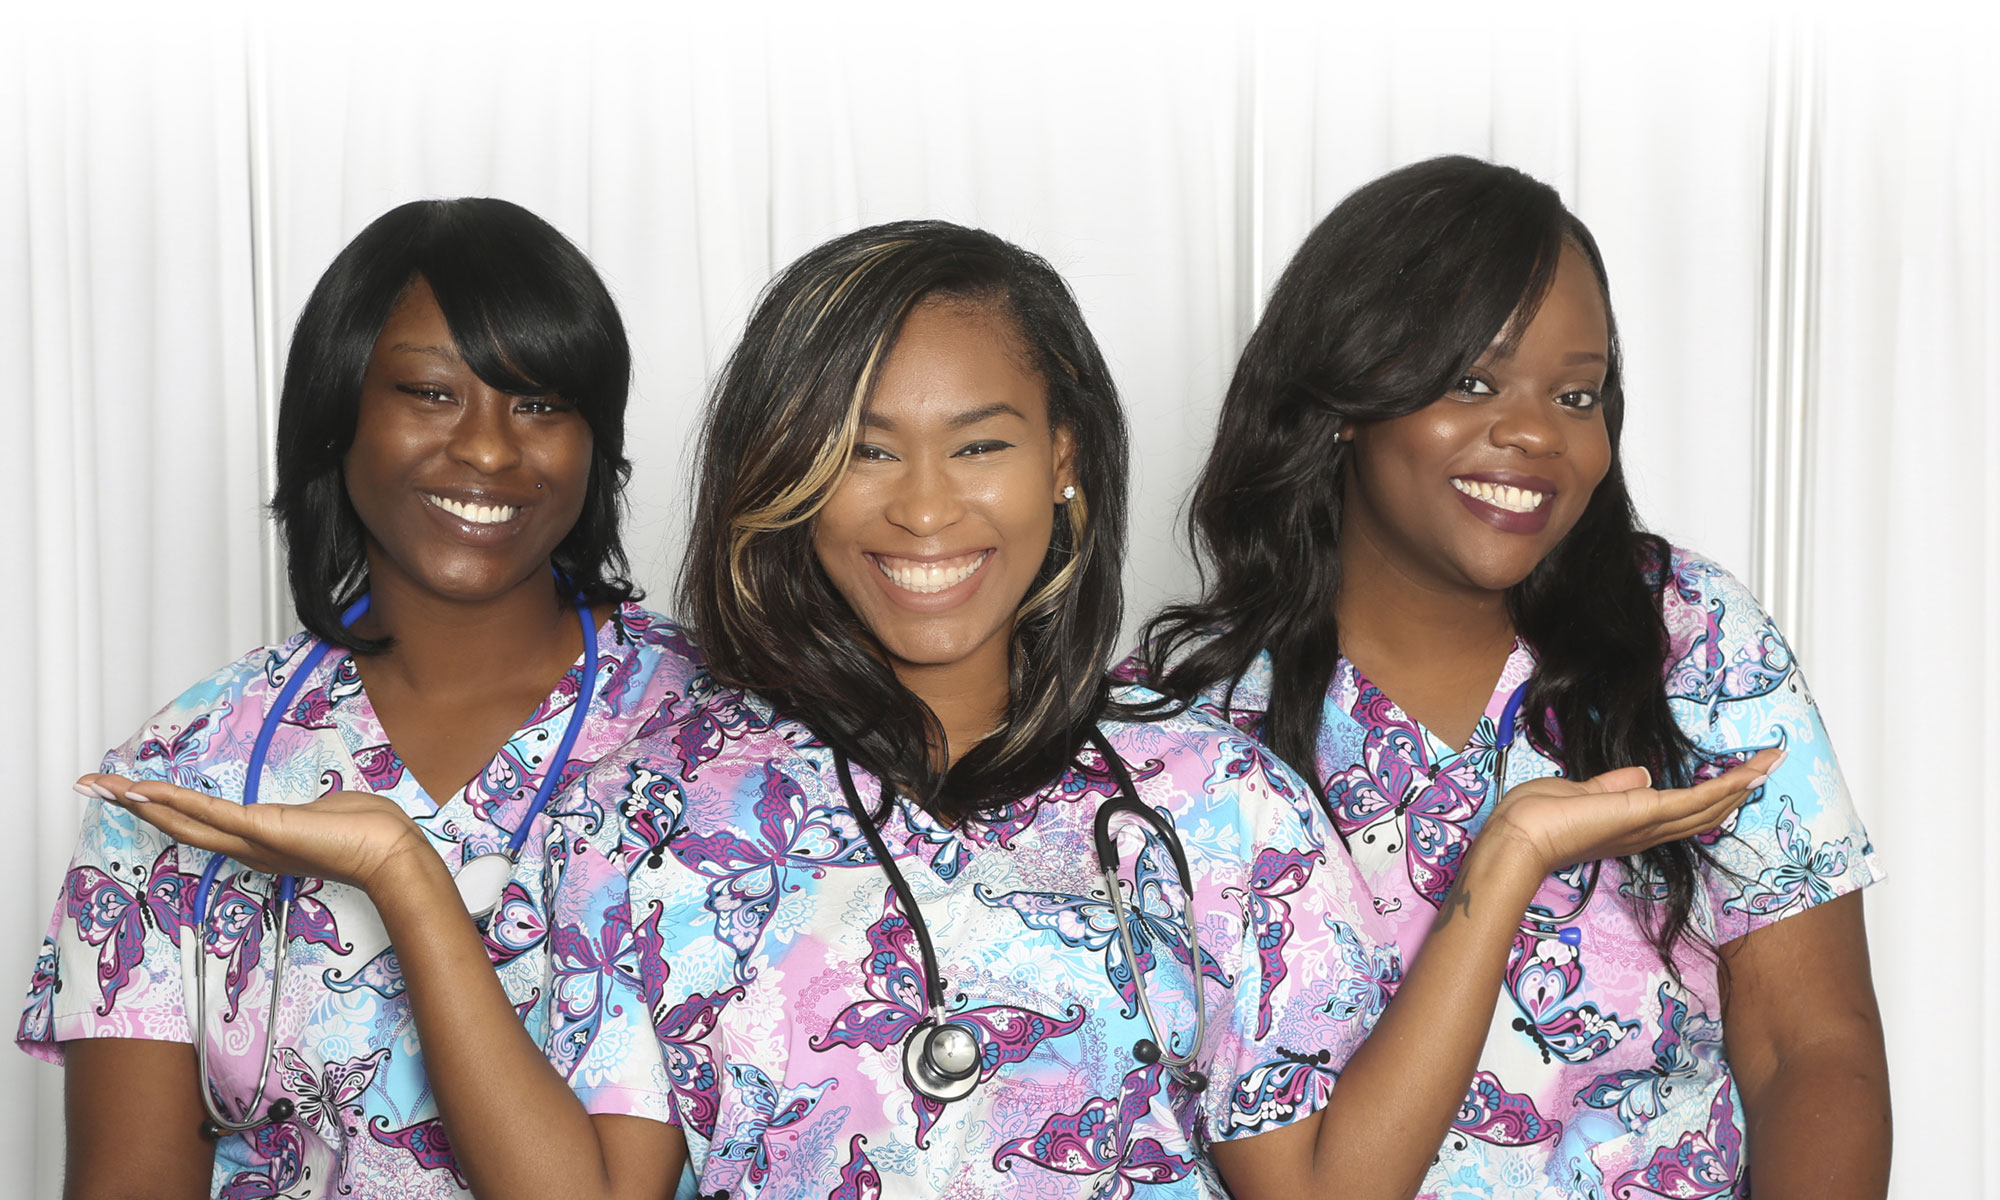 3 nurses smiling together at the facility